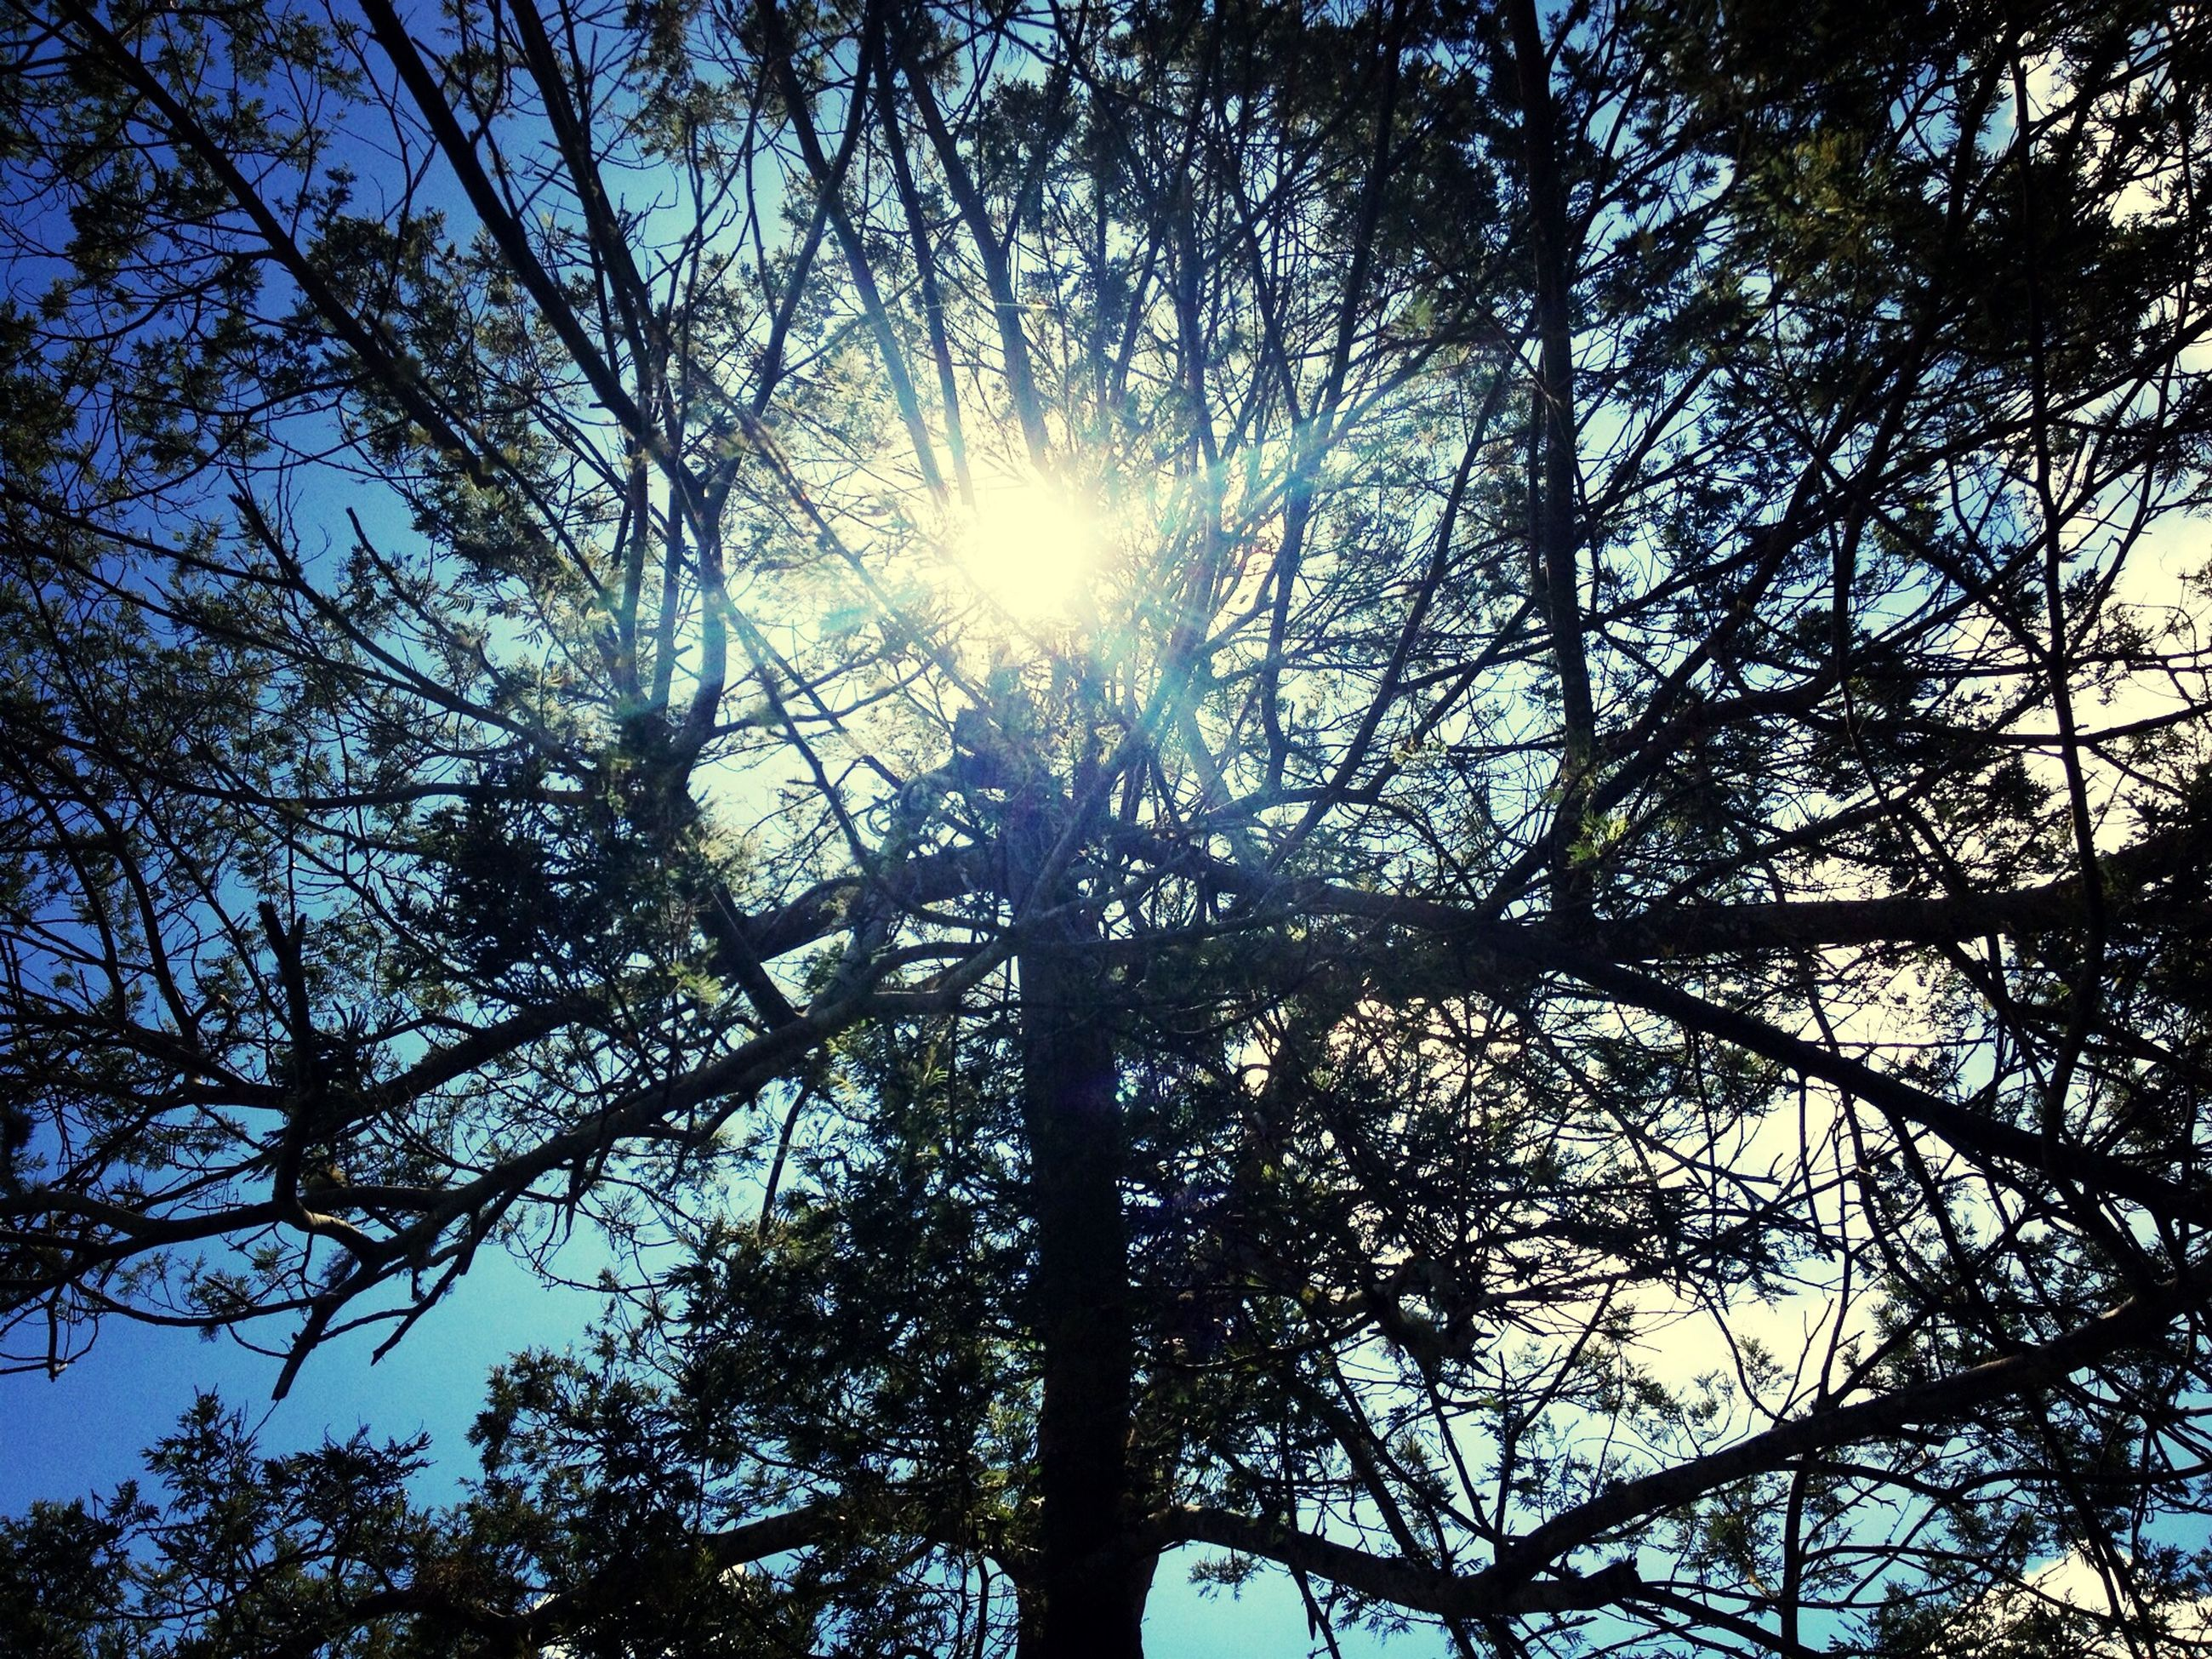 tree, low angle view, sun, branch, sunbeam, sunlight, tranquility, growth, nature, lens flare, beauty in nature, sky, silhouette, back lit, scenics, tree trunk, day, sunny, tranquil scene, bright